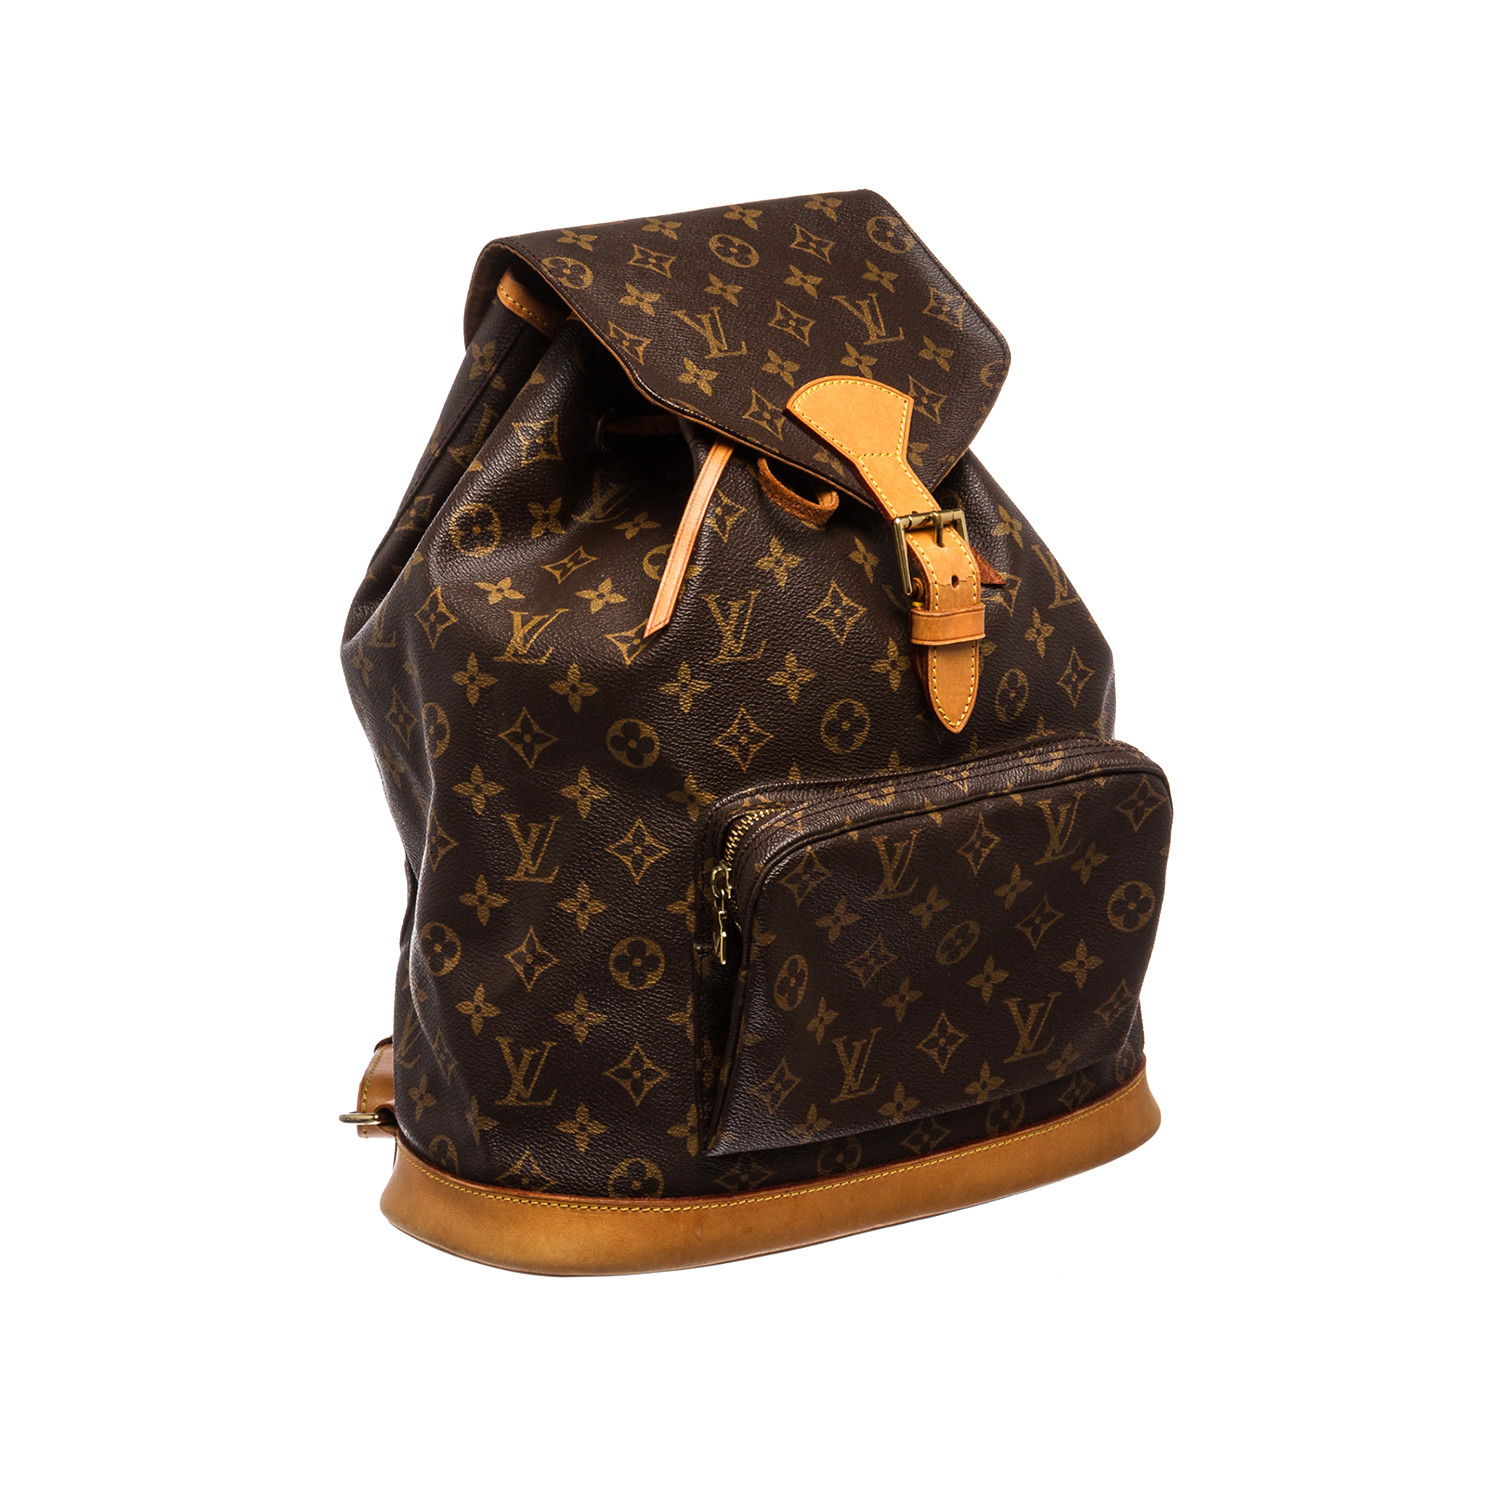 louis vuitton monogram montsouris gm backpack sd0976 pre owned louis vuitton mcm. Black Bedroom Furniture Sets. Home Design Ideas